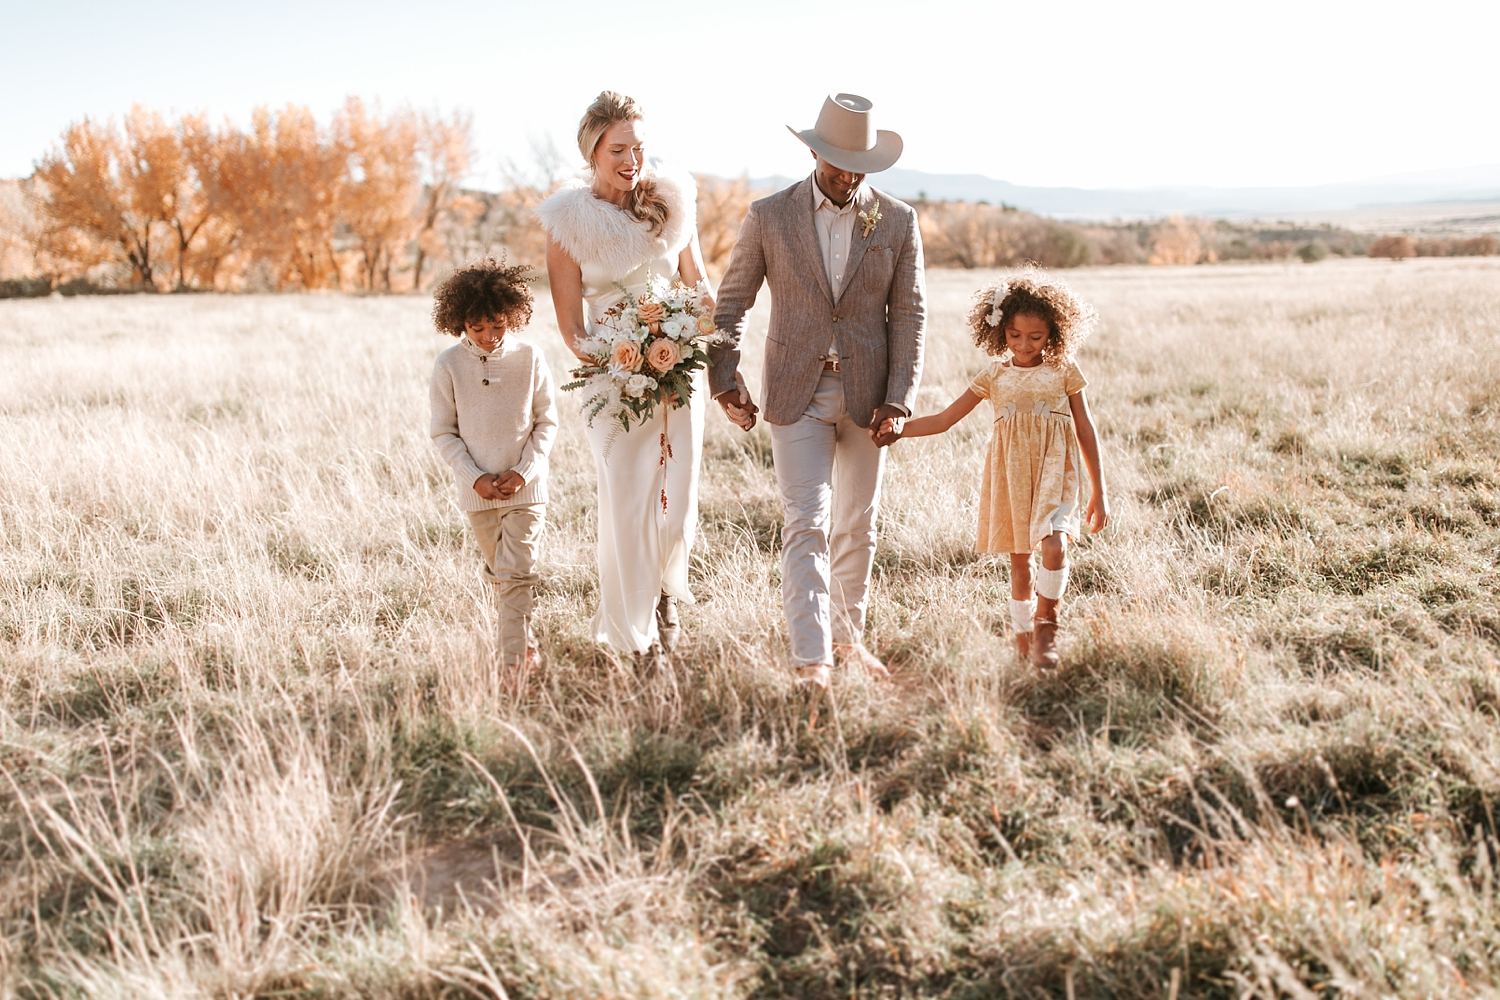 Alicia+lucia+photography+-+albuquerque+wedding+photographer+-+santa+fe+wedding+photography+-+new+mexico+wedding+photographer+-+new+mexico+ghost+ranch+wedding+-+styled+wedding+shoot_0027.jpg